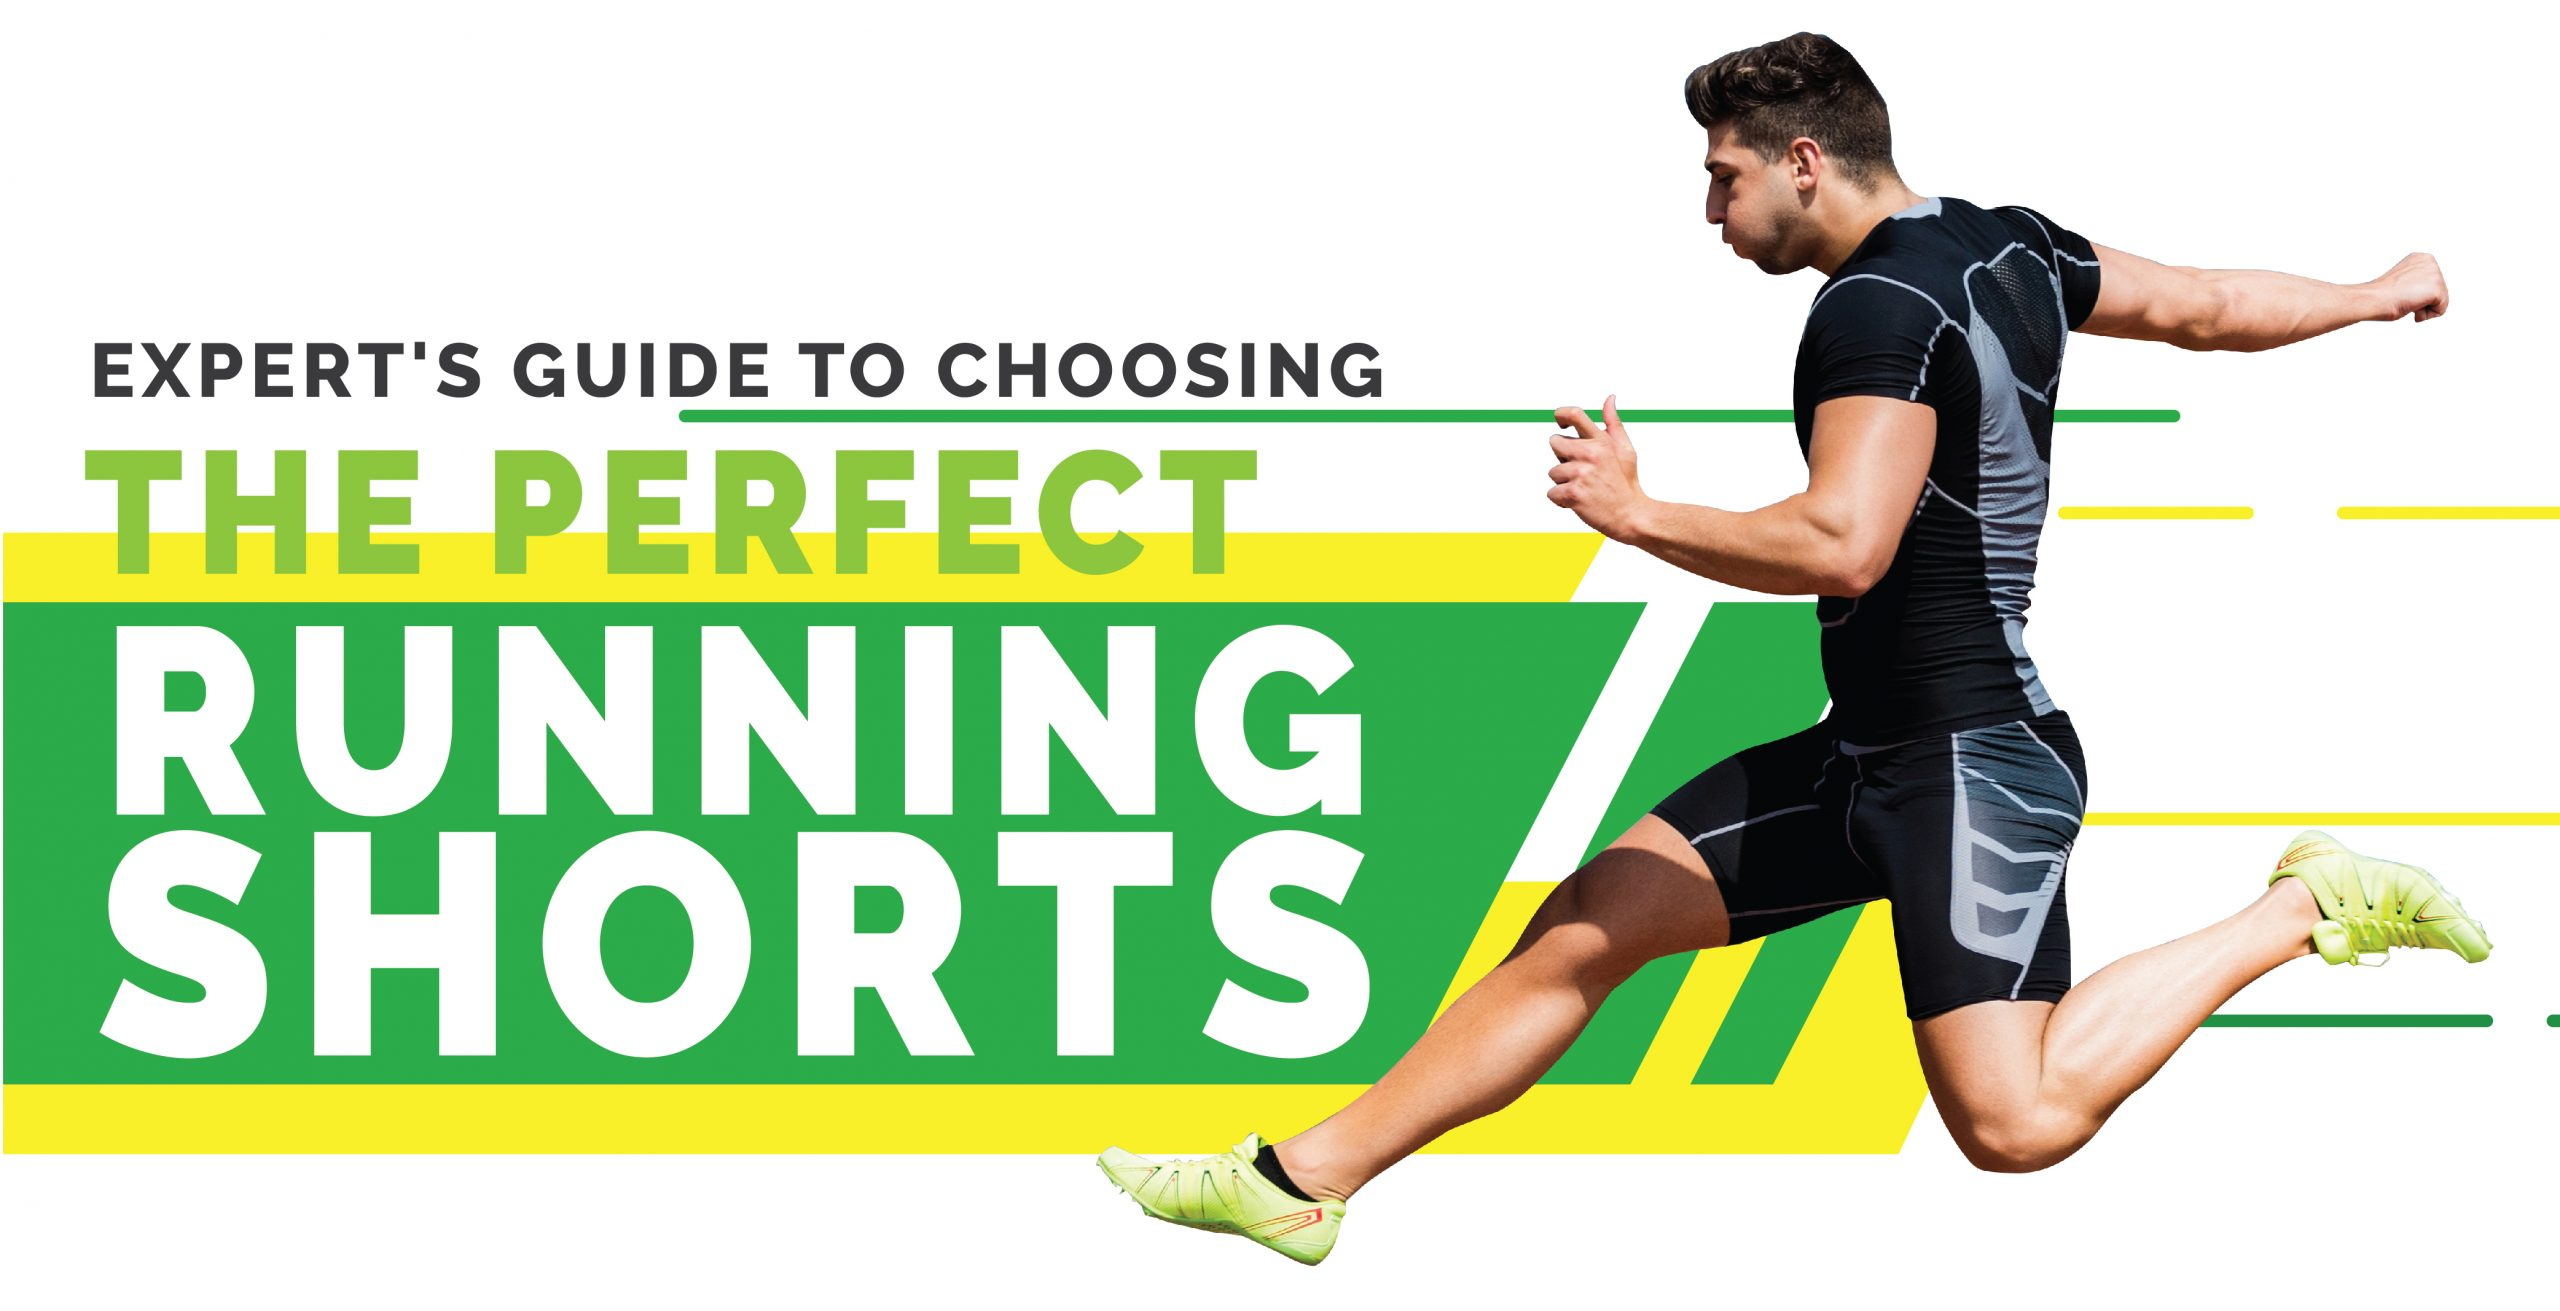 Expert's Guide To Choosing The Perfect Running Shorts